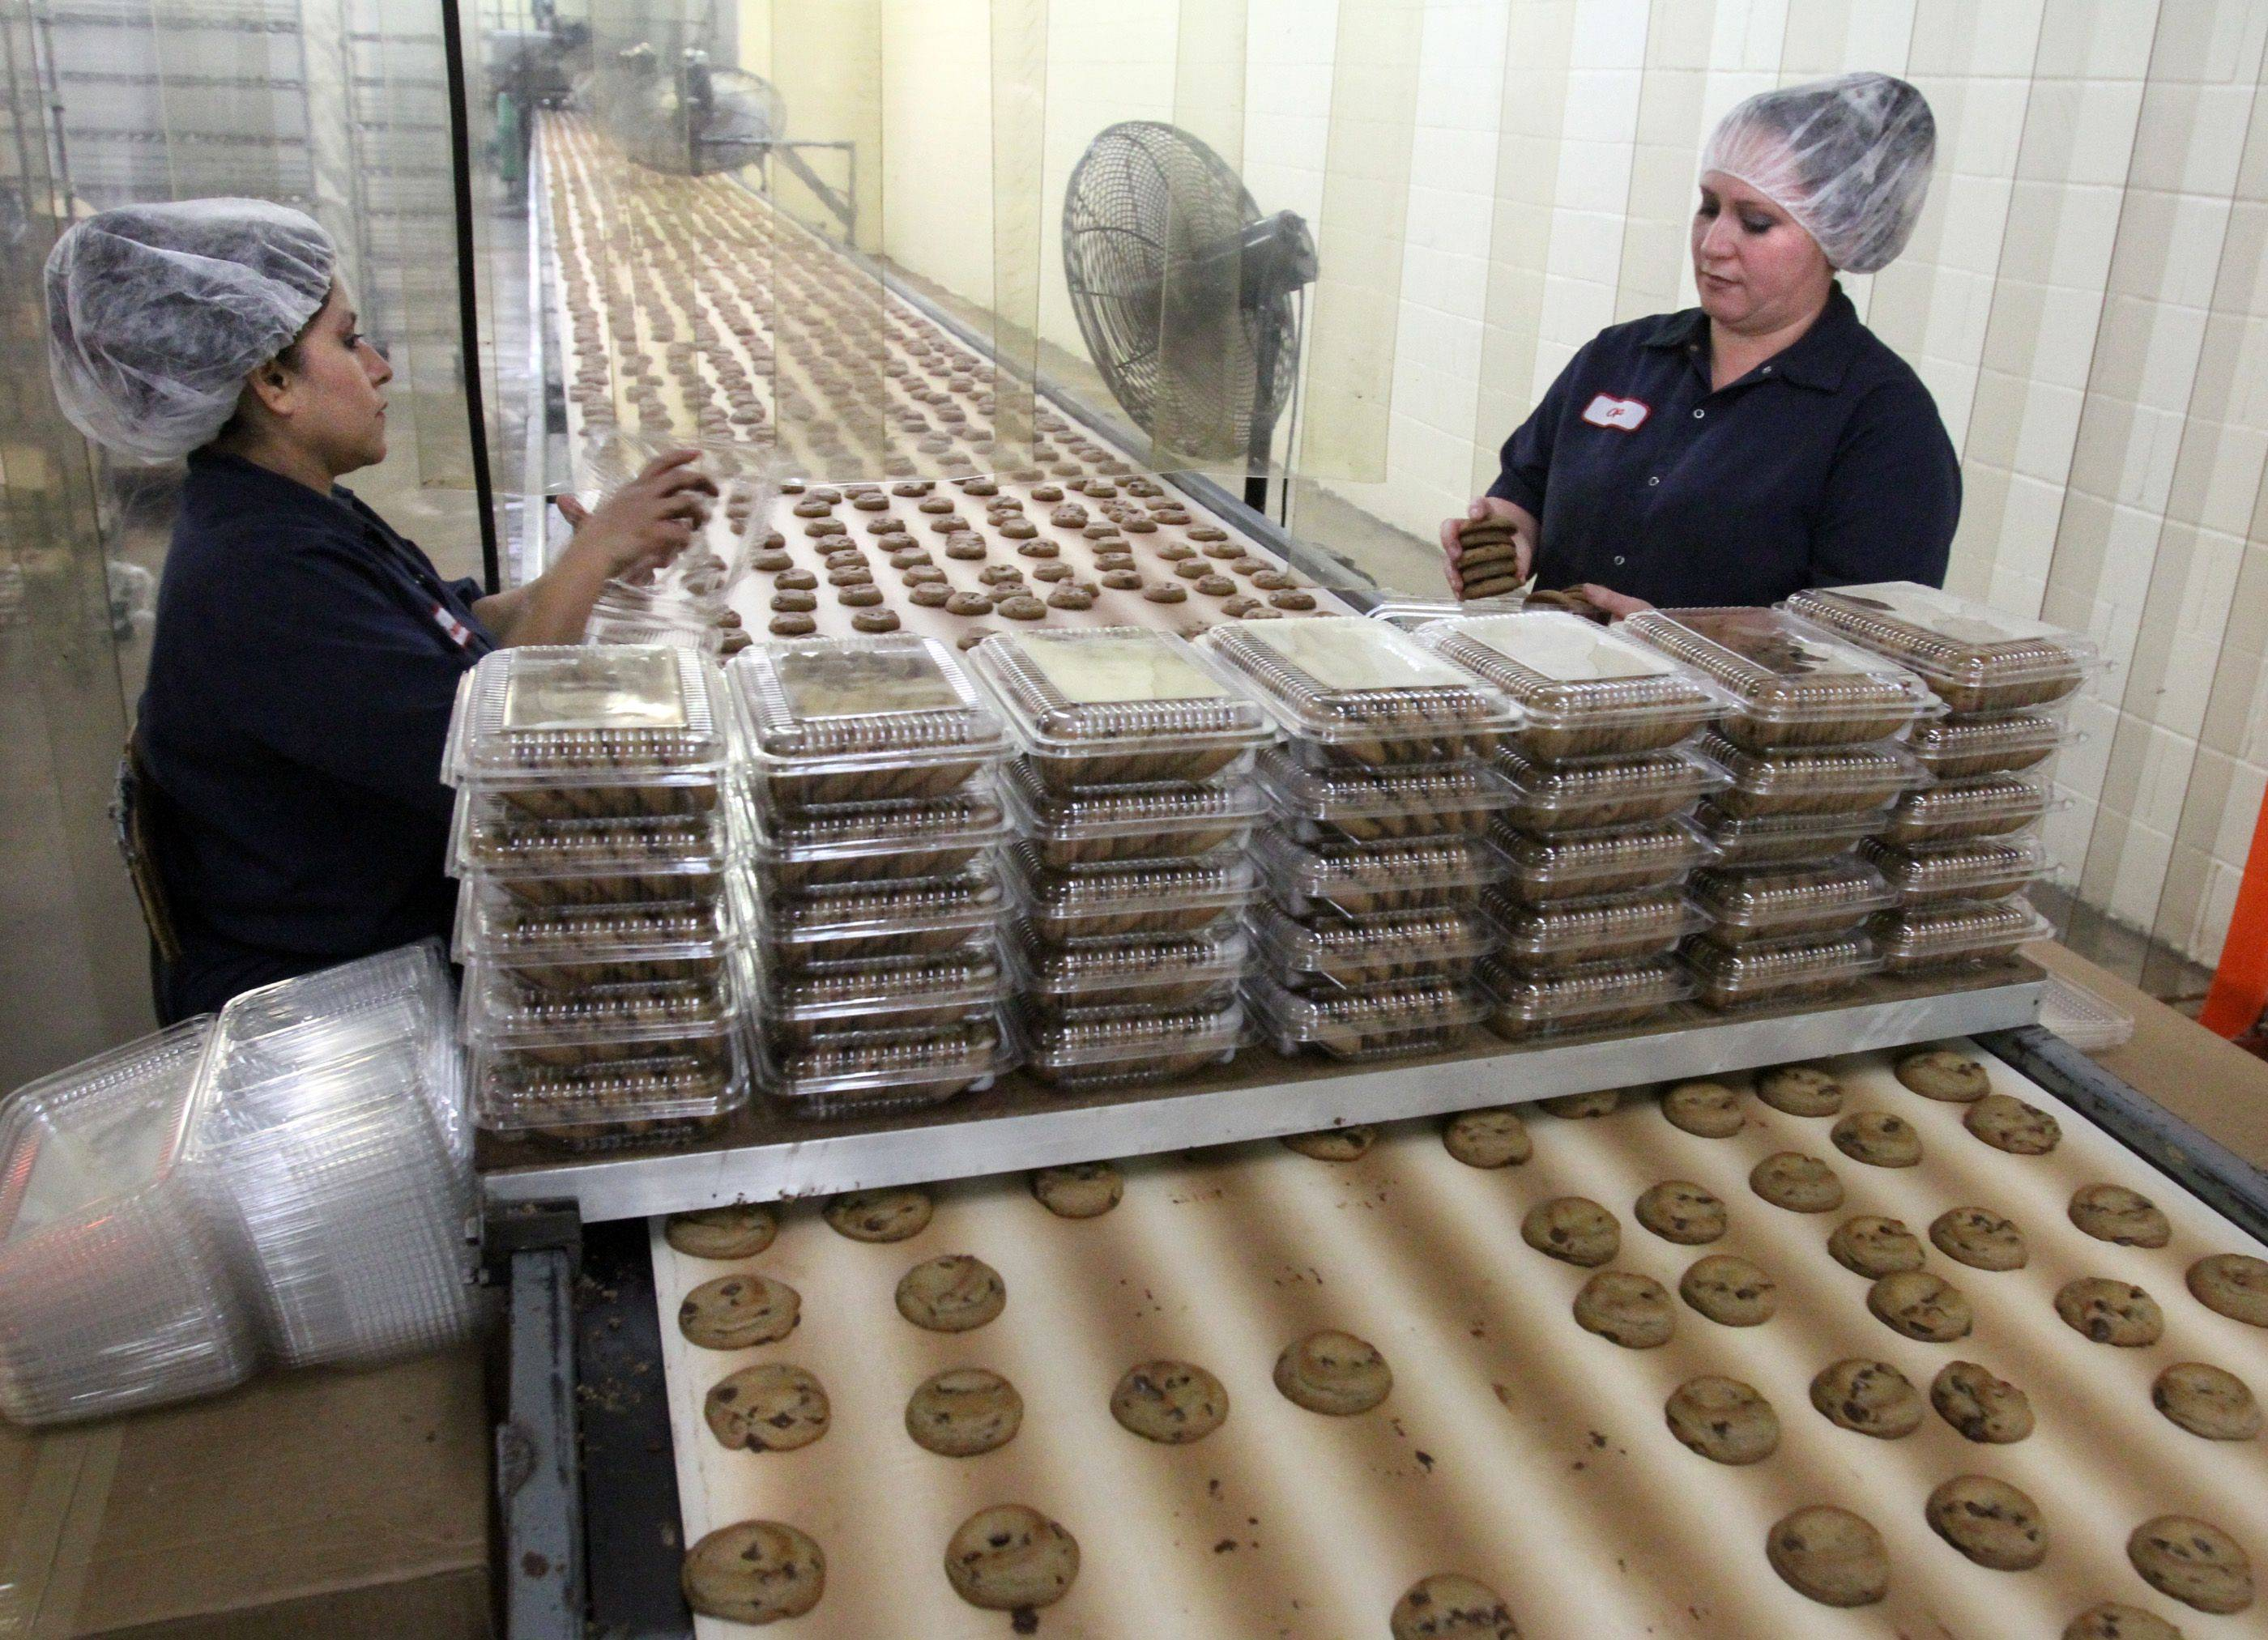 Images: Behind the scenes at Matt's Cookies in Wheeling